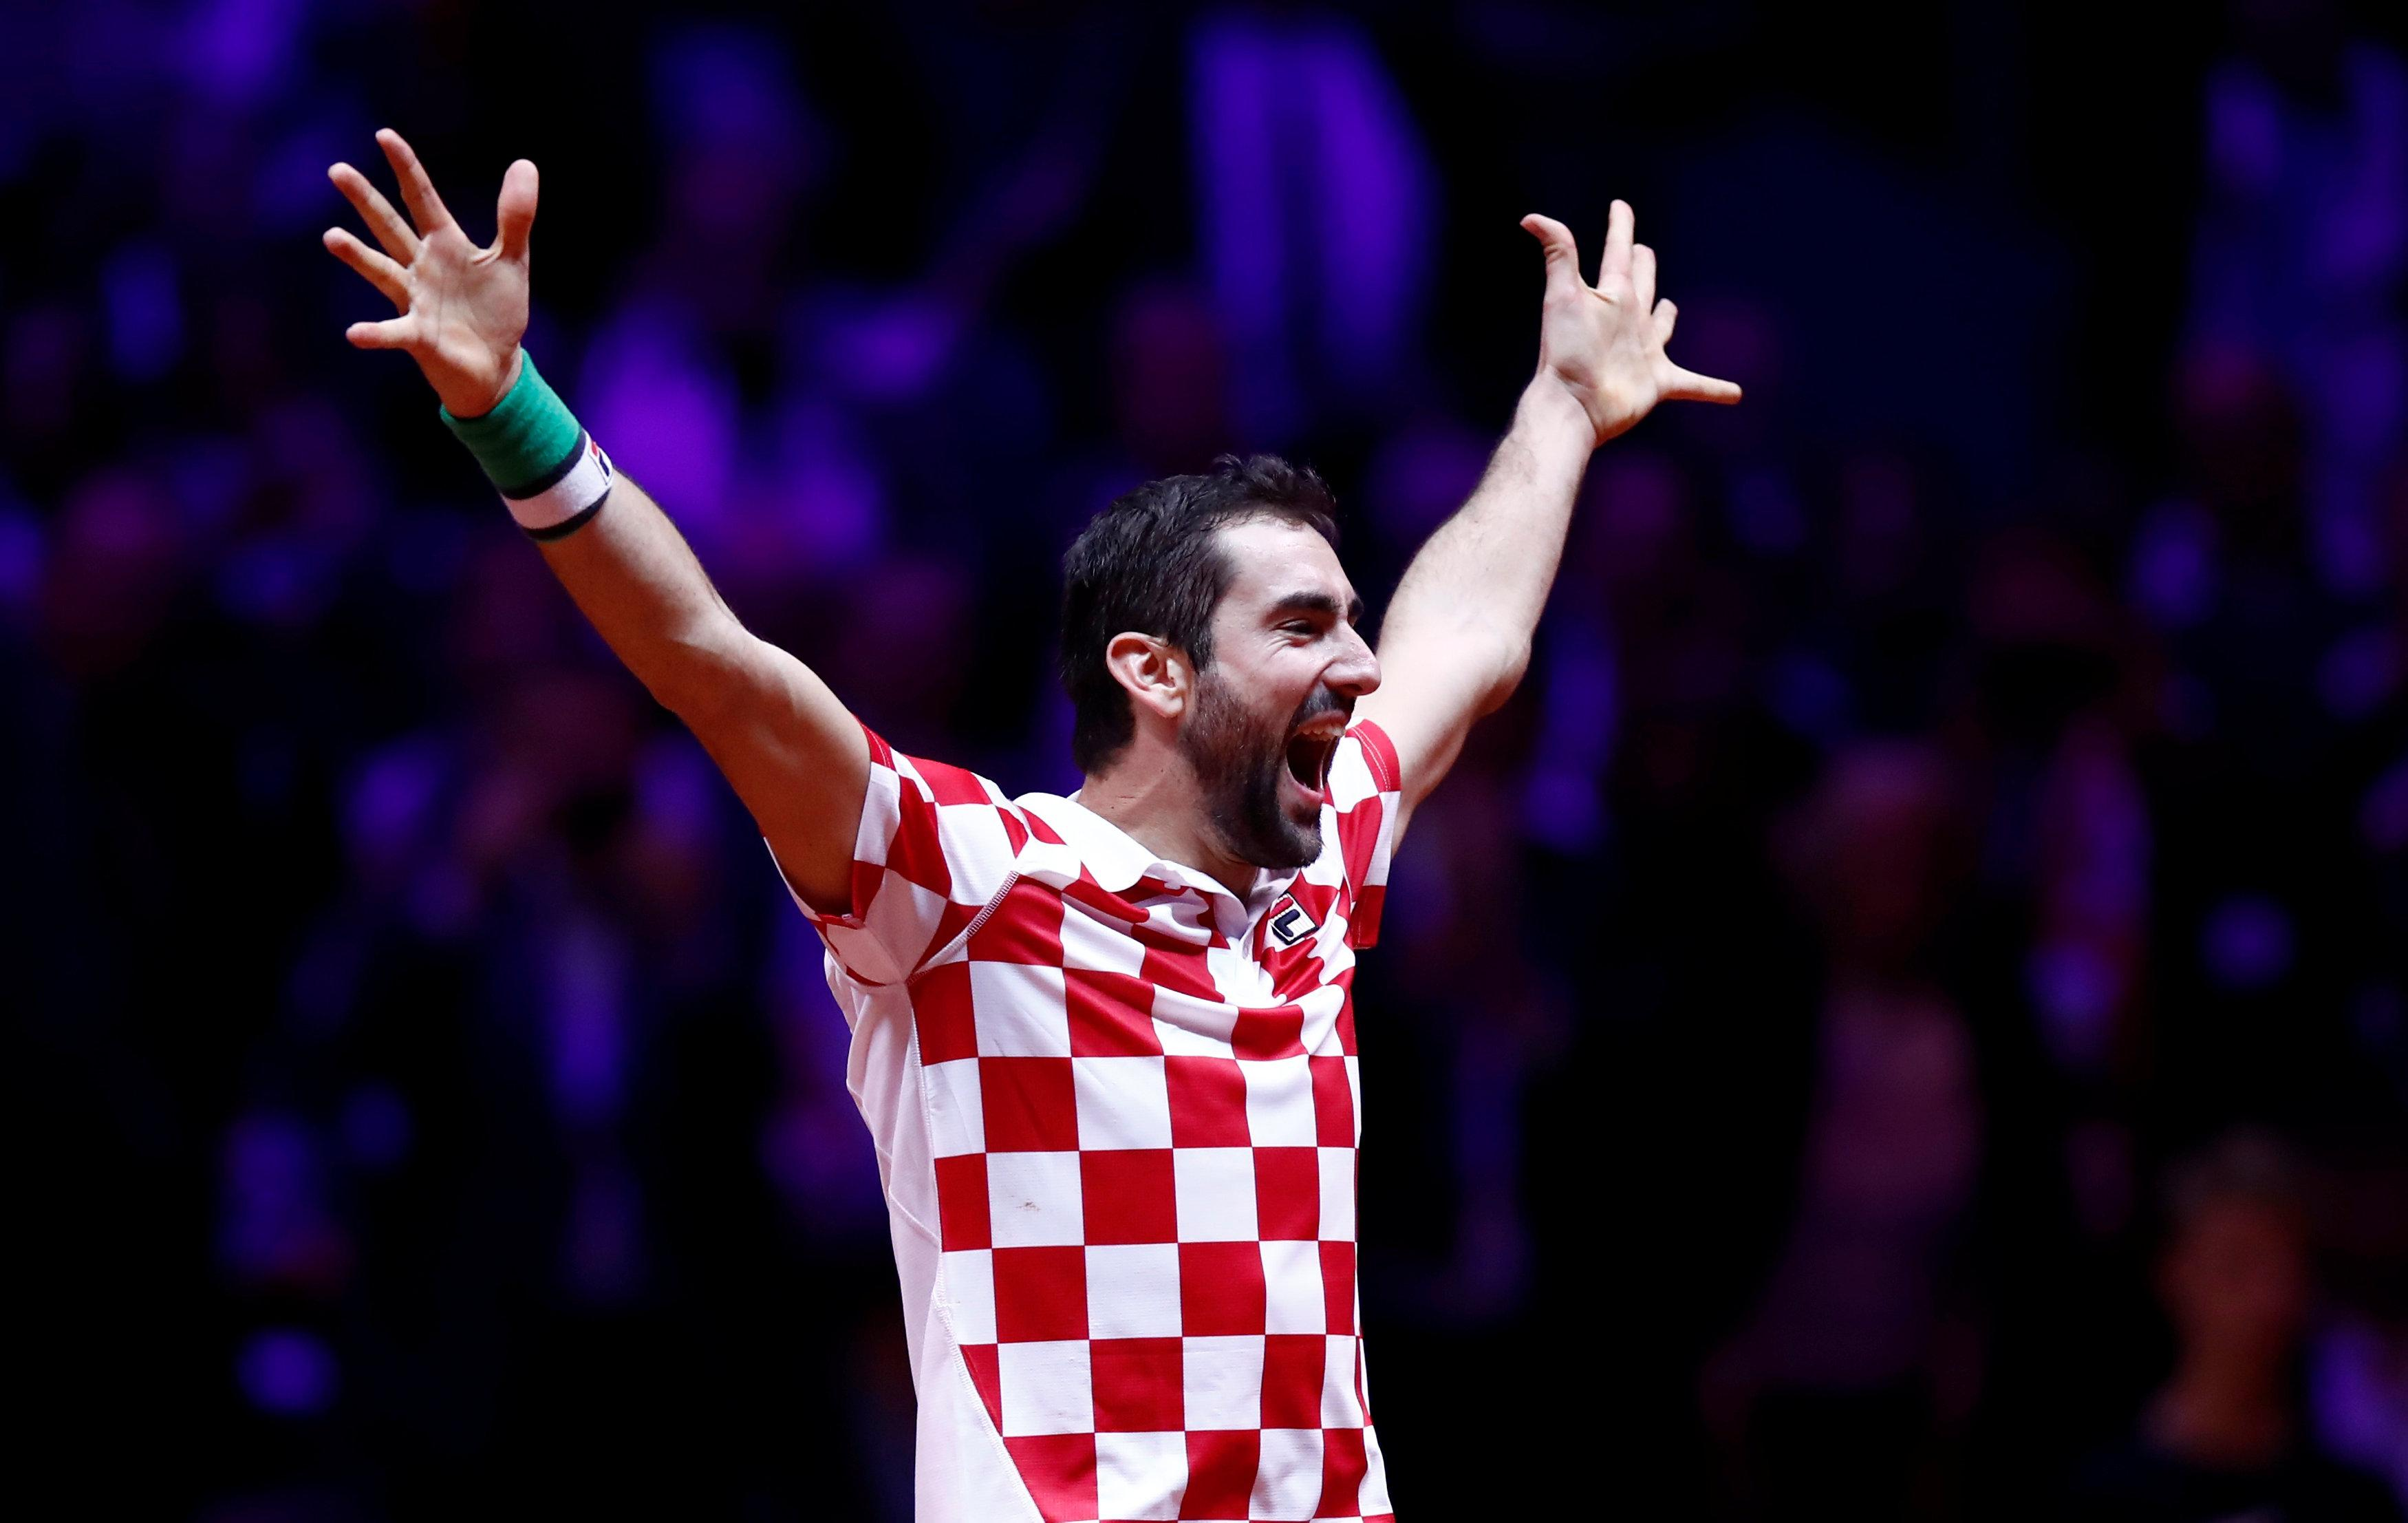 Marin Cilic celebrated wildly as he led Croatia to Davis Cup glory without dropping a set